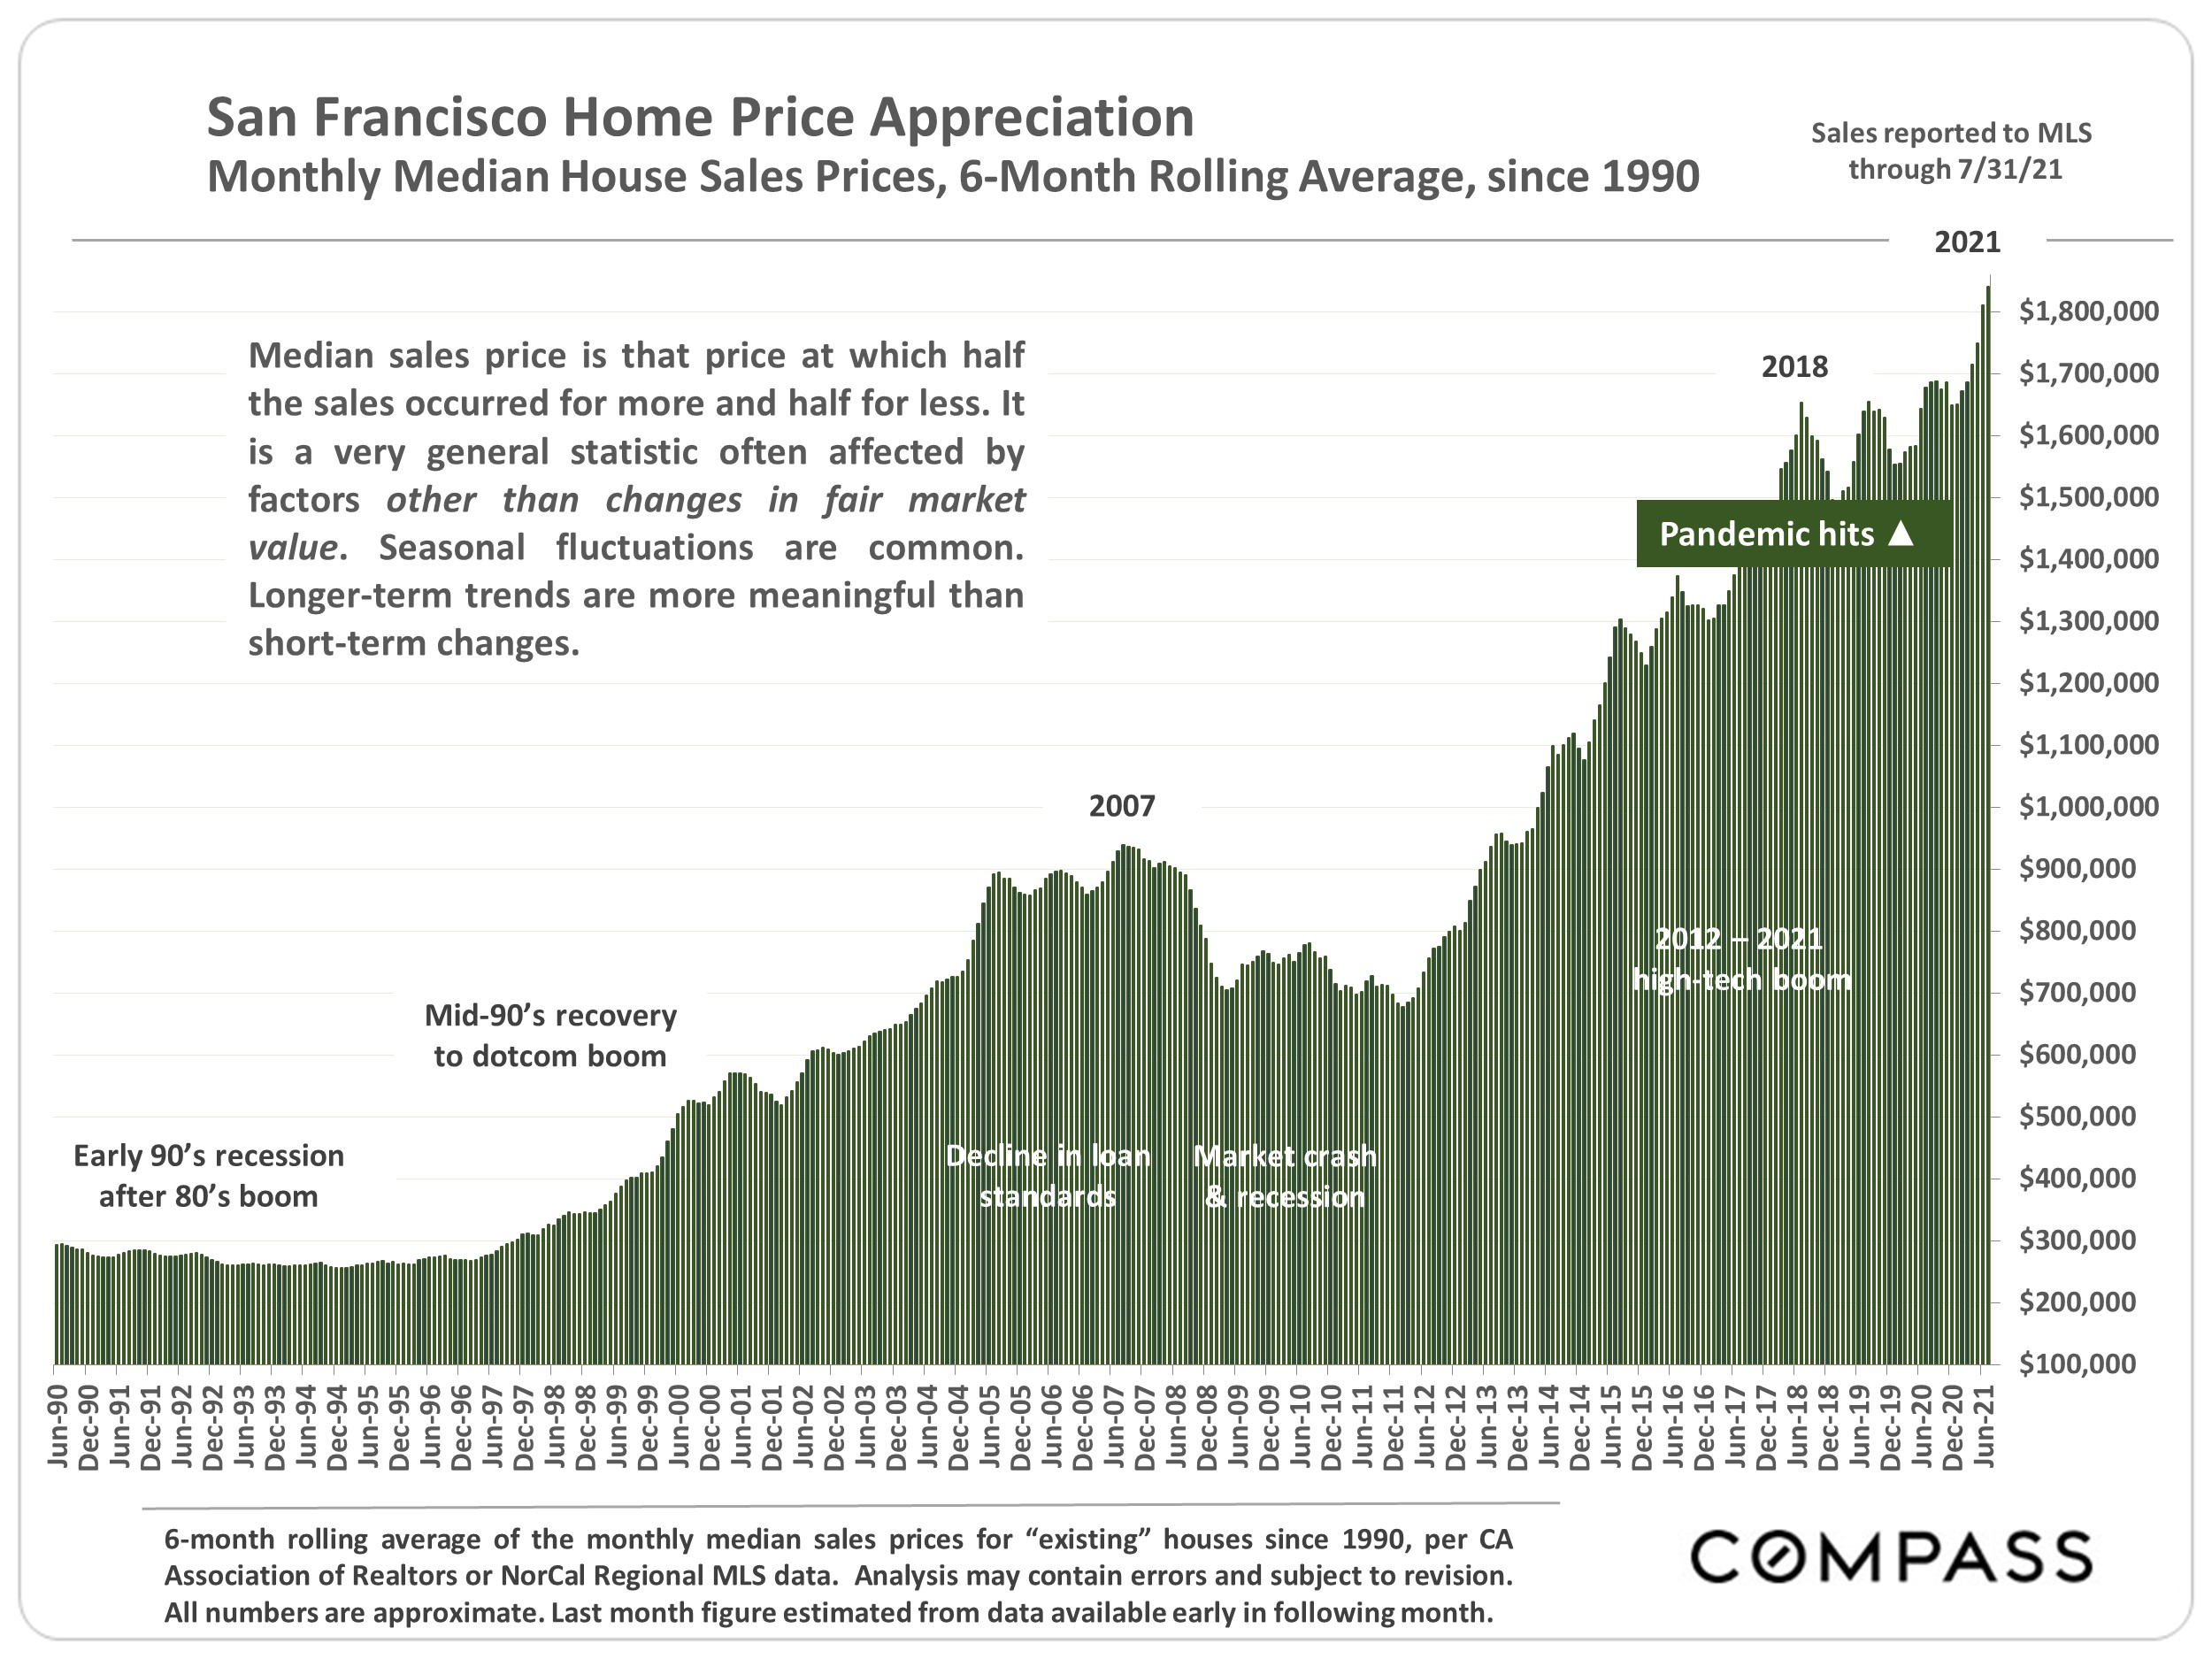 San Francisco home price appreciation and San Francisco median home price over time